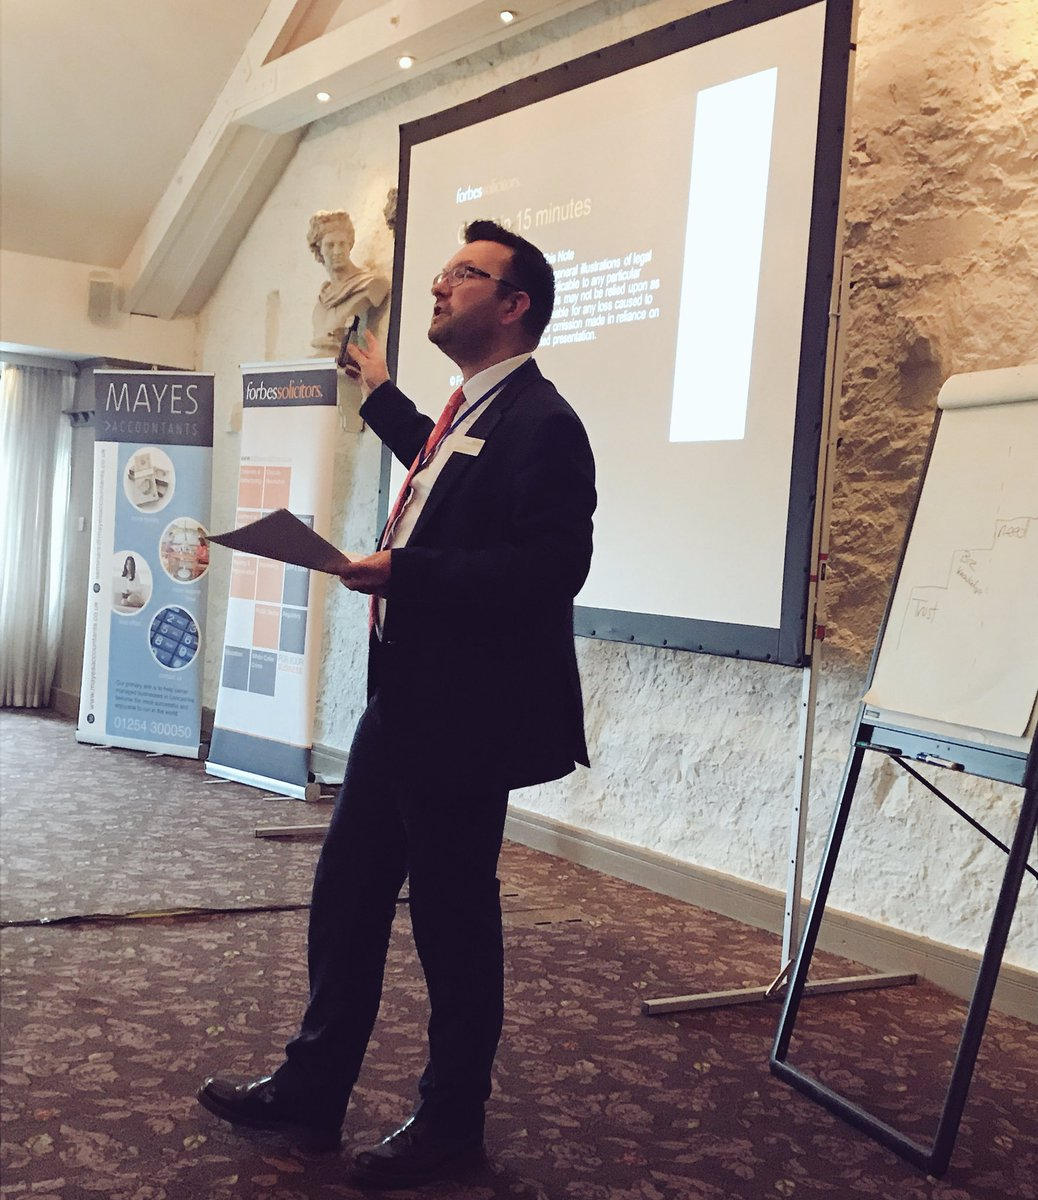 Next up the man who makes #GDPR fun @ForbesSolicitor Daniel Milnes #LBGF @Mayesaccountant @CBPartners_CIC<br>http://pic.twitter.com/MlHh1Oojqx